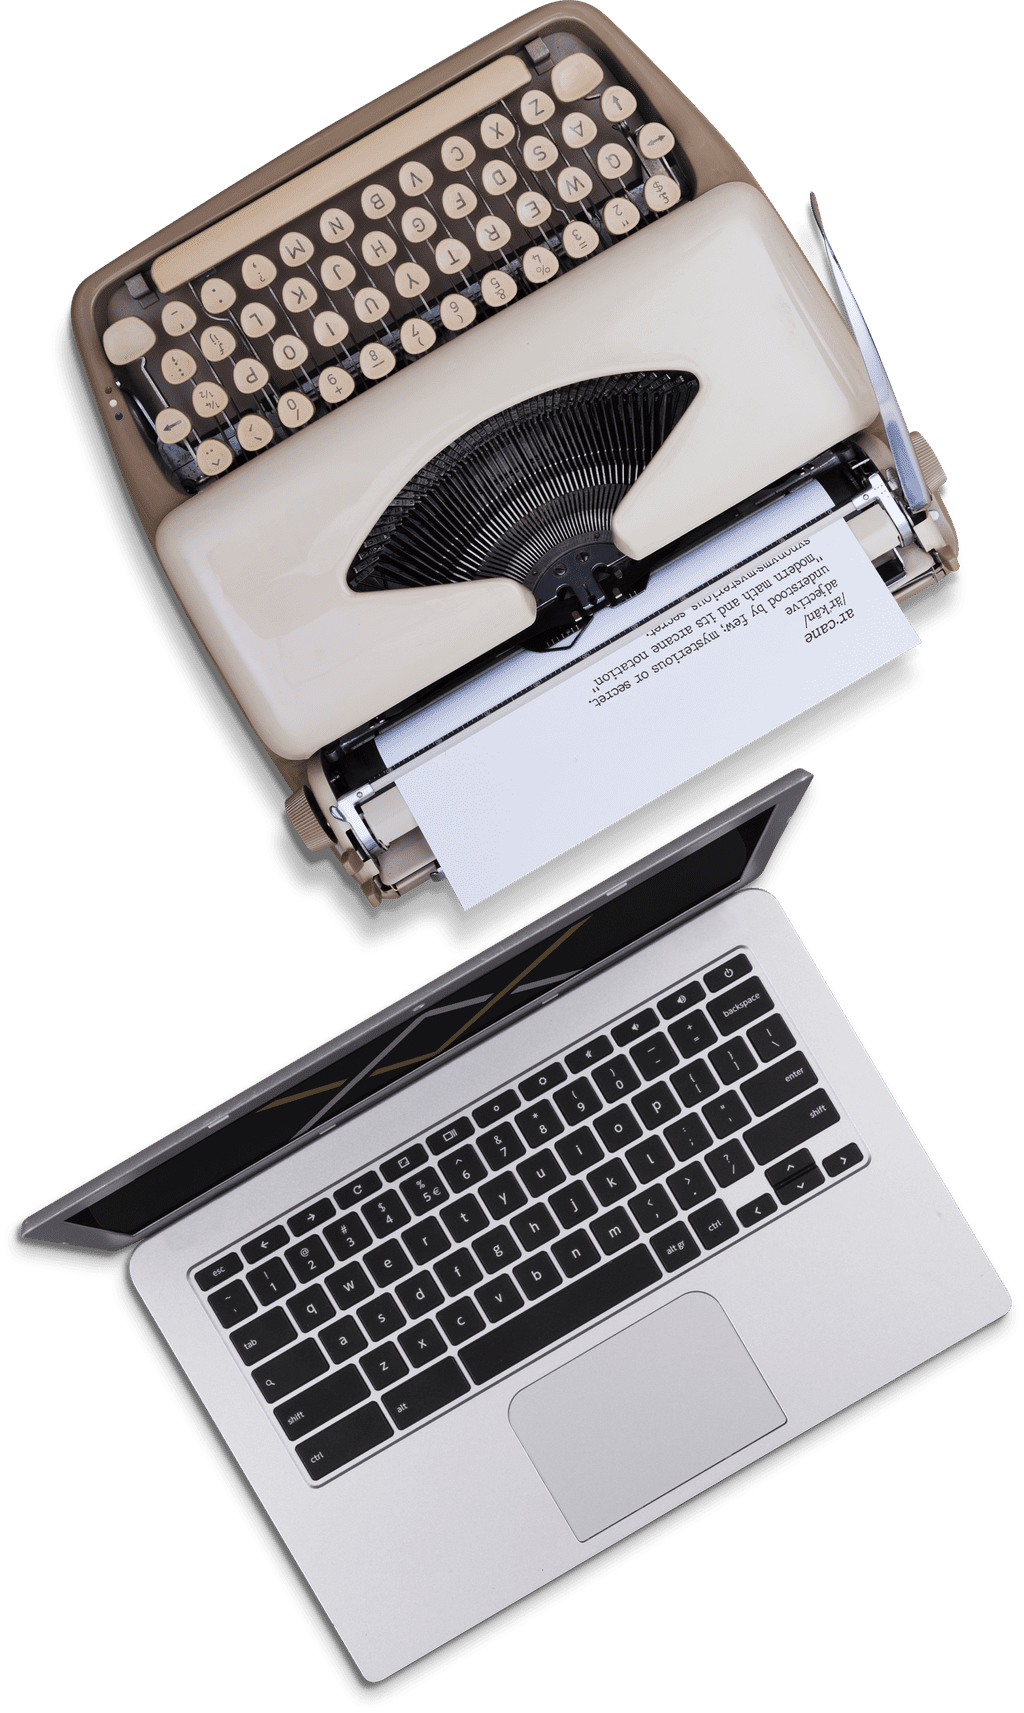 Top View of Typewriter And A Macbook